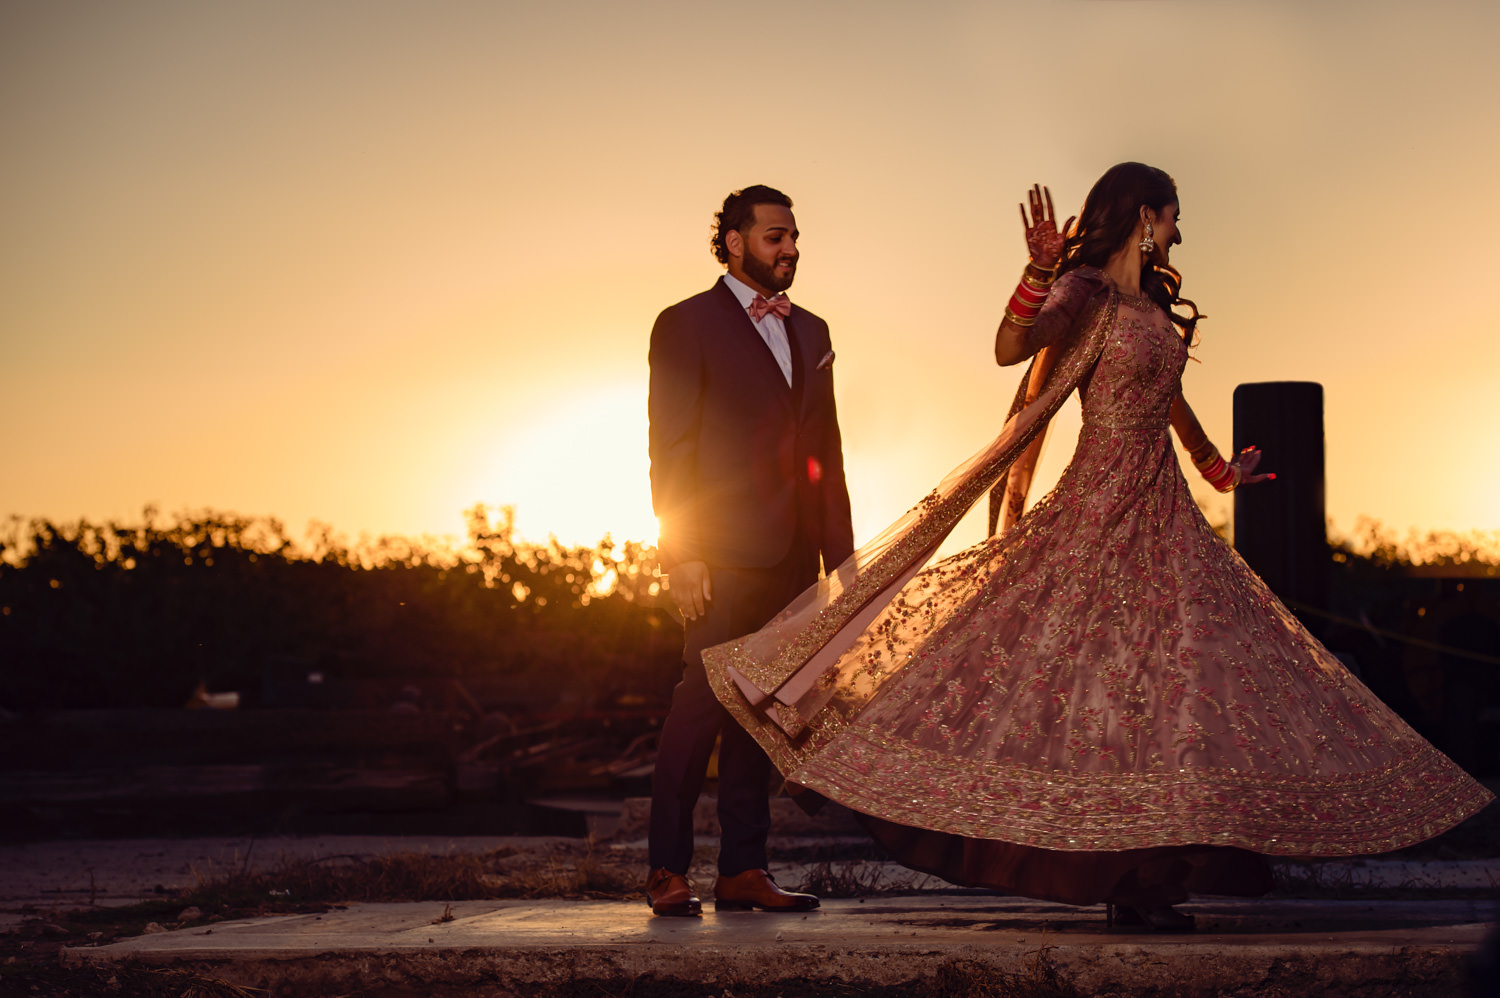 Sikh wedding photographer Modesto